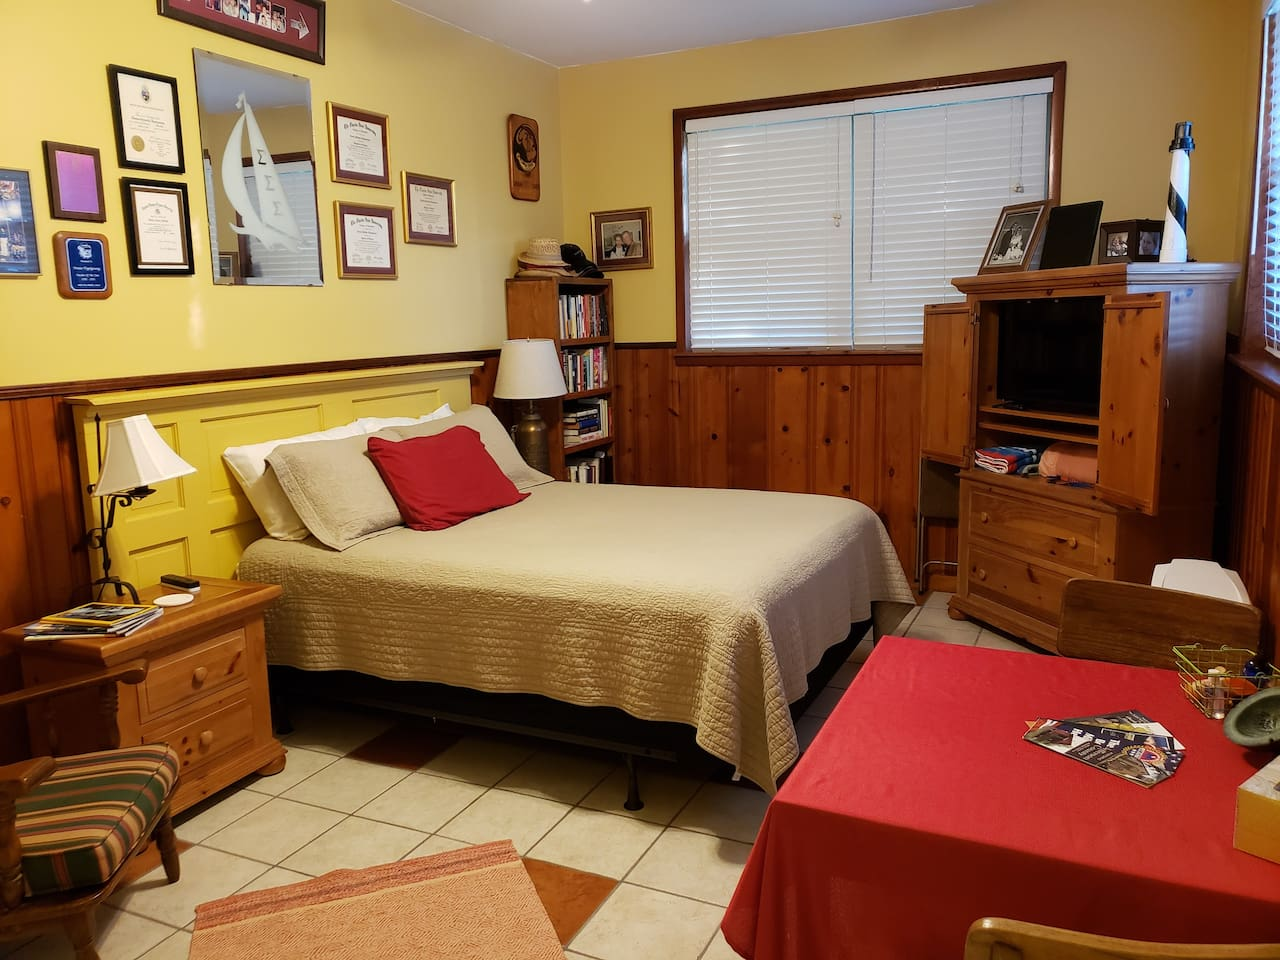 Spacious room with a Super Comfy Queen sized bed, work table, TV, Armchair, & Mini Kitchen Area. Plenty of electrical docks for recharging Electronics while you are on the road.